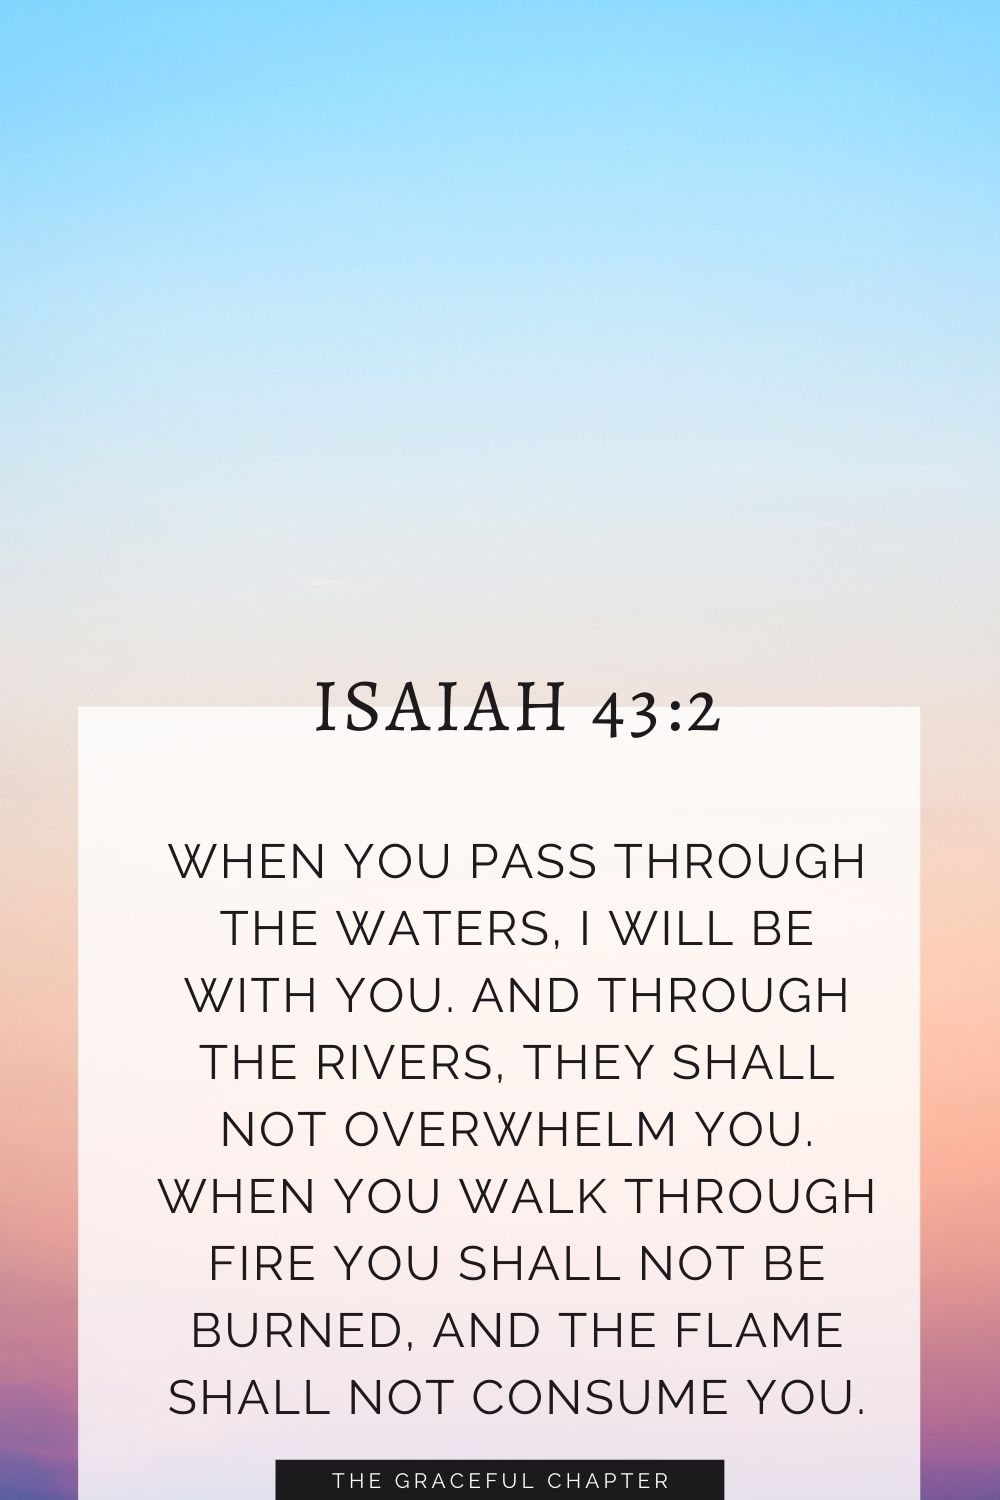 When you pass through the waters, I will be with you; and through the rivers, they shall not overwhelm you; when you walk through fire you shall not be burned, and the flame shall not consume you. Isaiah 43:2